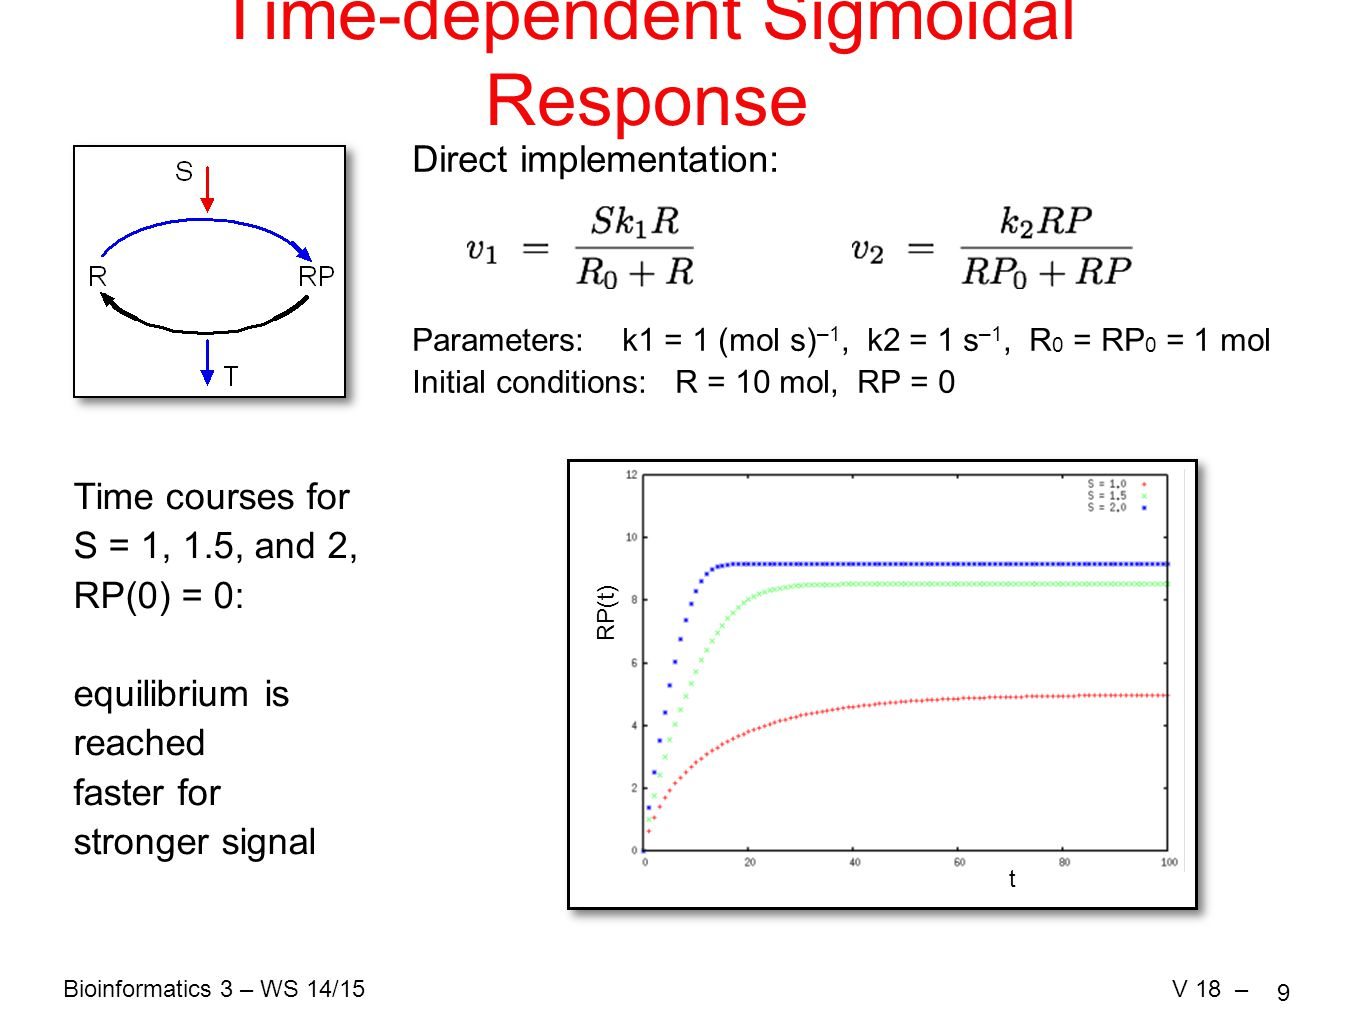 Bioinformatics 3 – WS 14/15V 18 – 9 Time-dependent Sigmoidal Response Direct implementation: Parameters: k1 = 1 (mol s) –1, k2 = 1 s –1, R 0 = RP 0 = 1 mol Initial conditions: R = 10 mol, RP = 0 Time courses for S = 1, 1.5, and 2, RP(0) = 0: equilibrium is reached faster for stronger signal t RP(t)